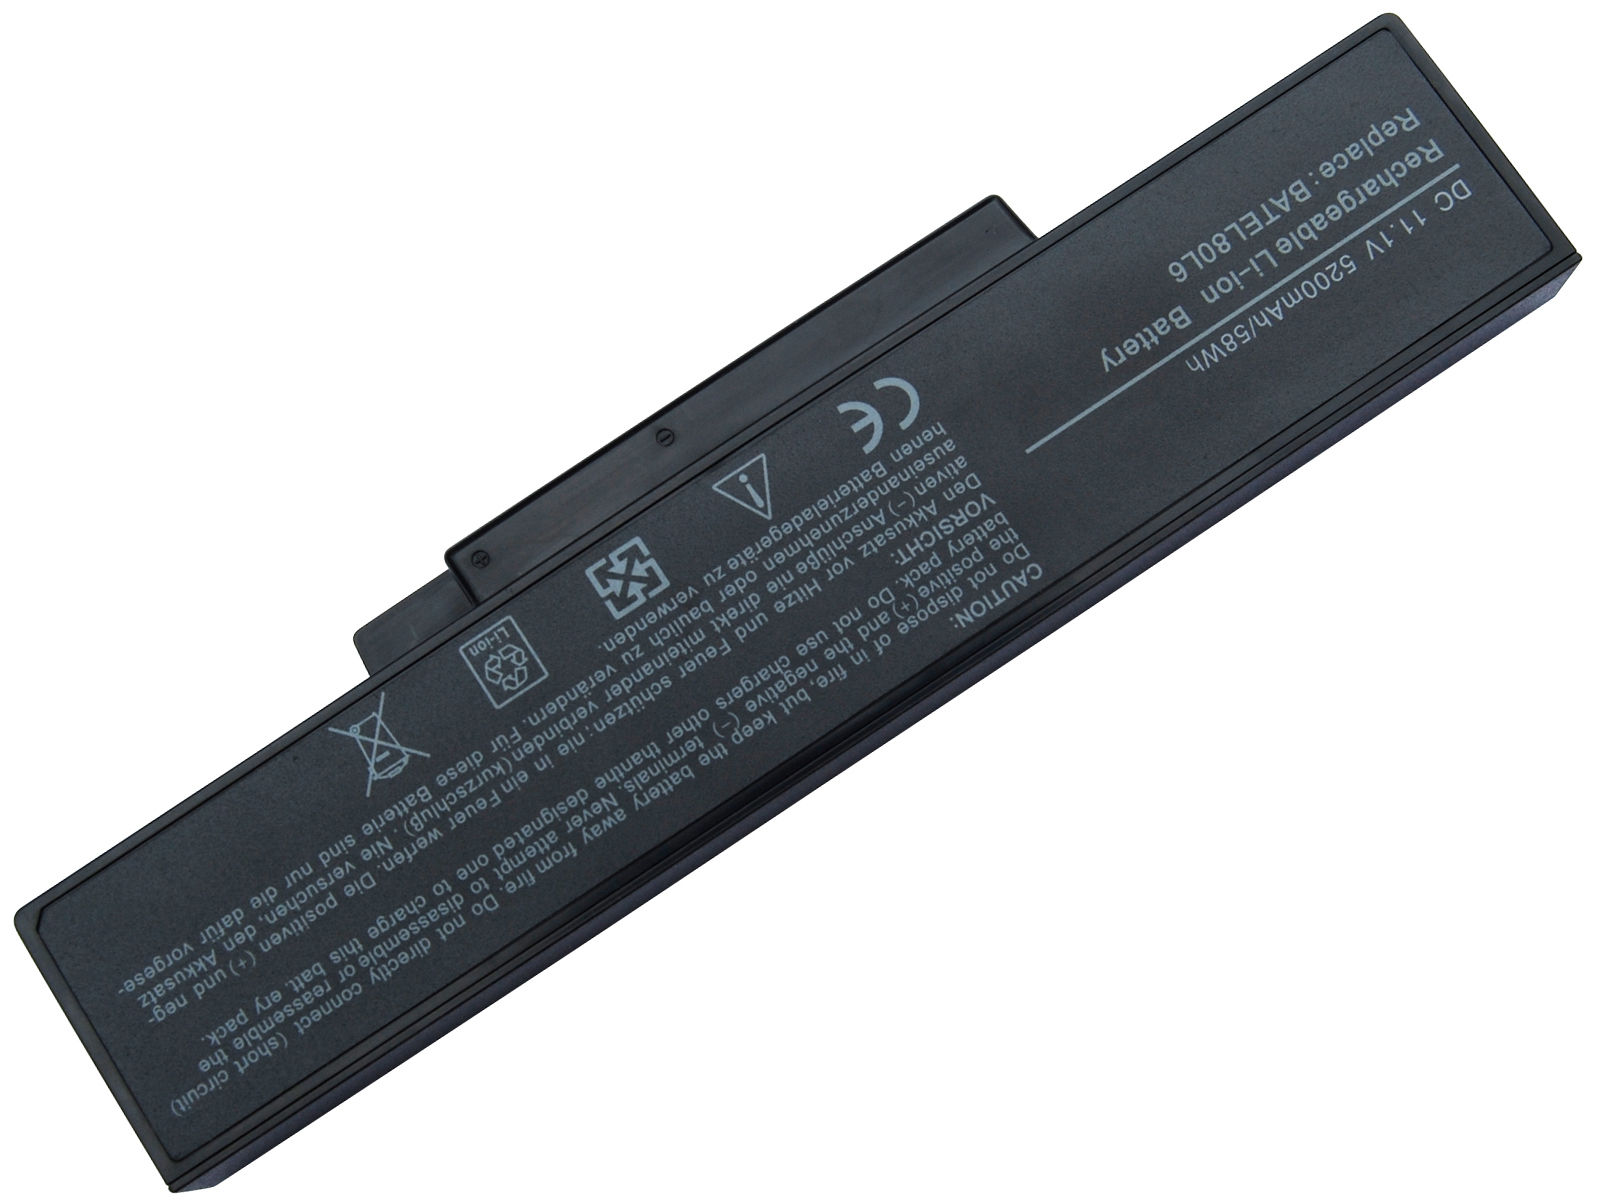 Replacement Msi GT720X Battery